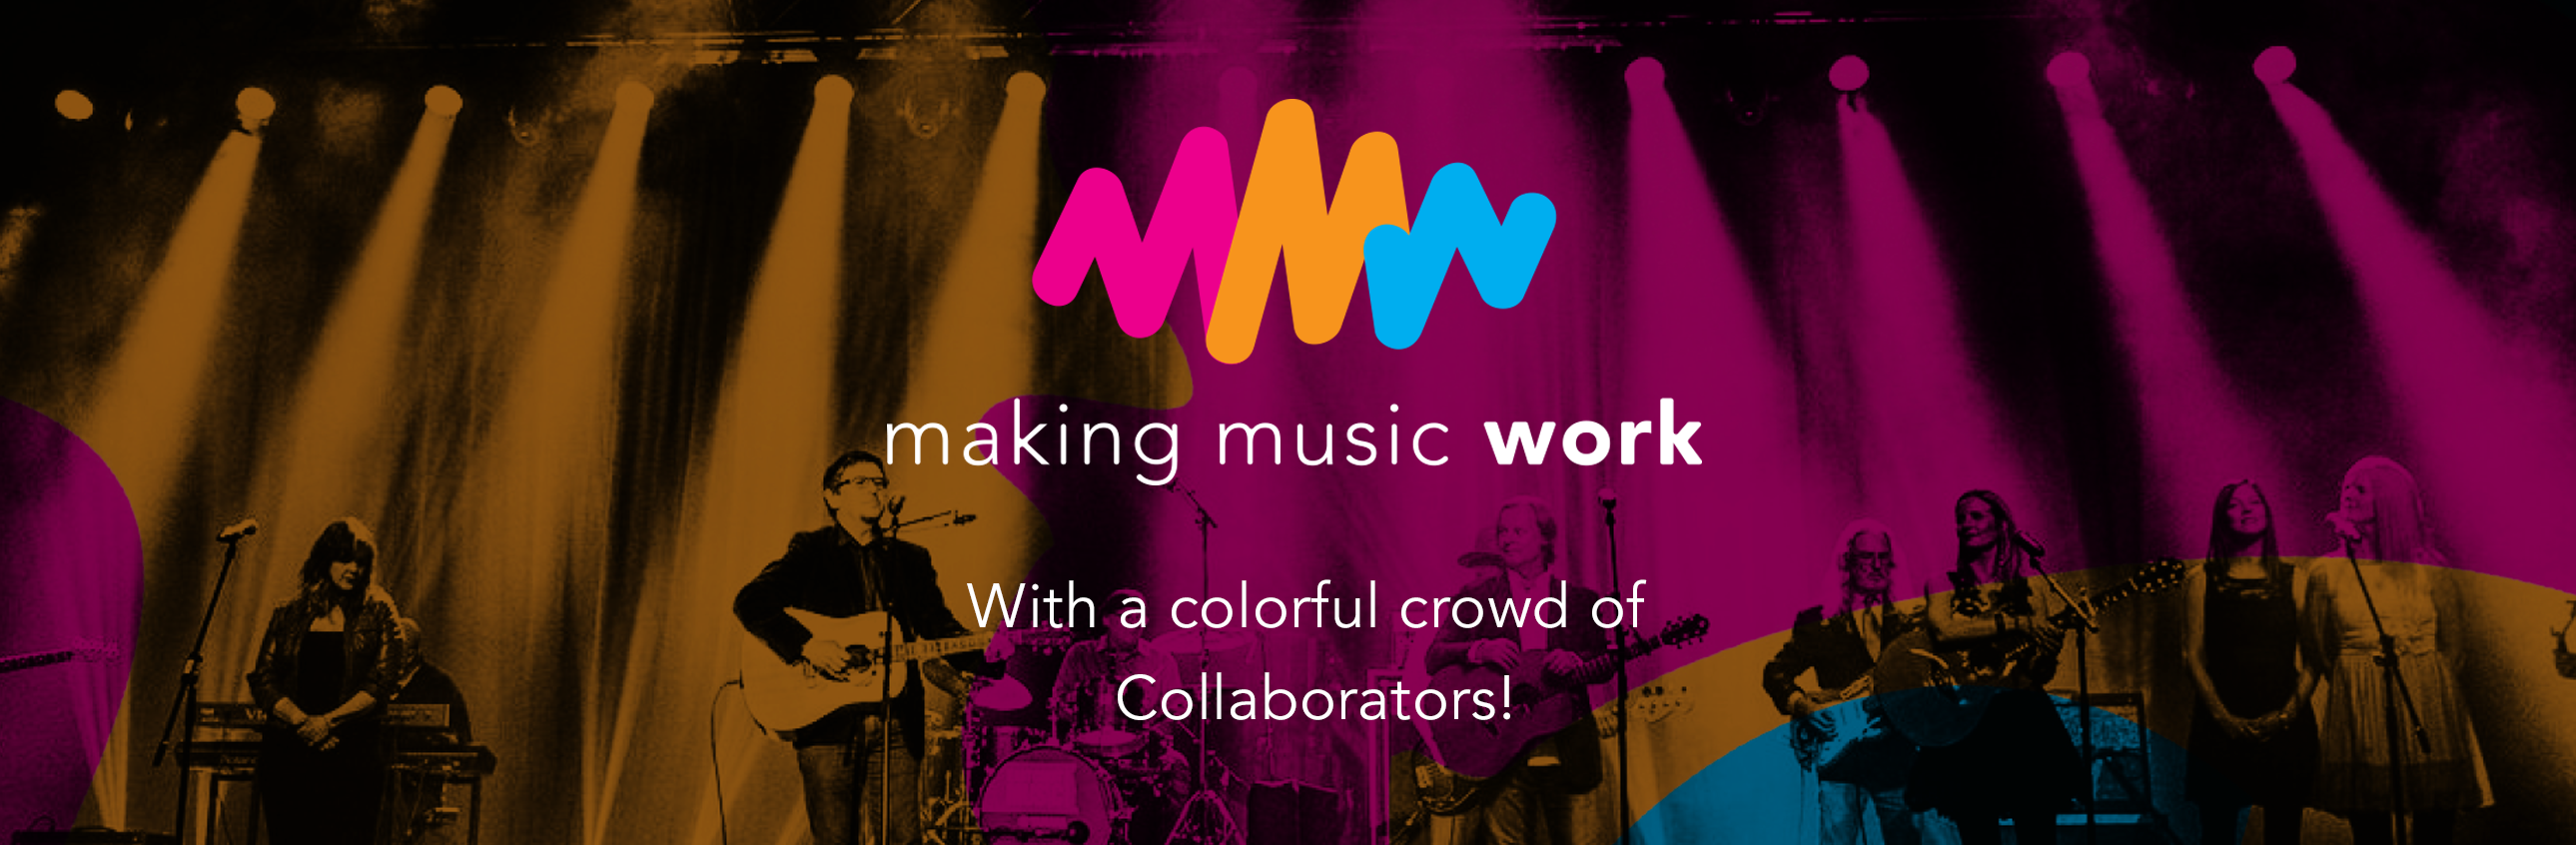 Making Music Work with a Colourful Crowd of Collaborators!